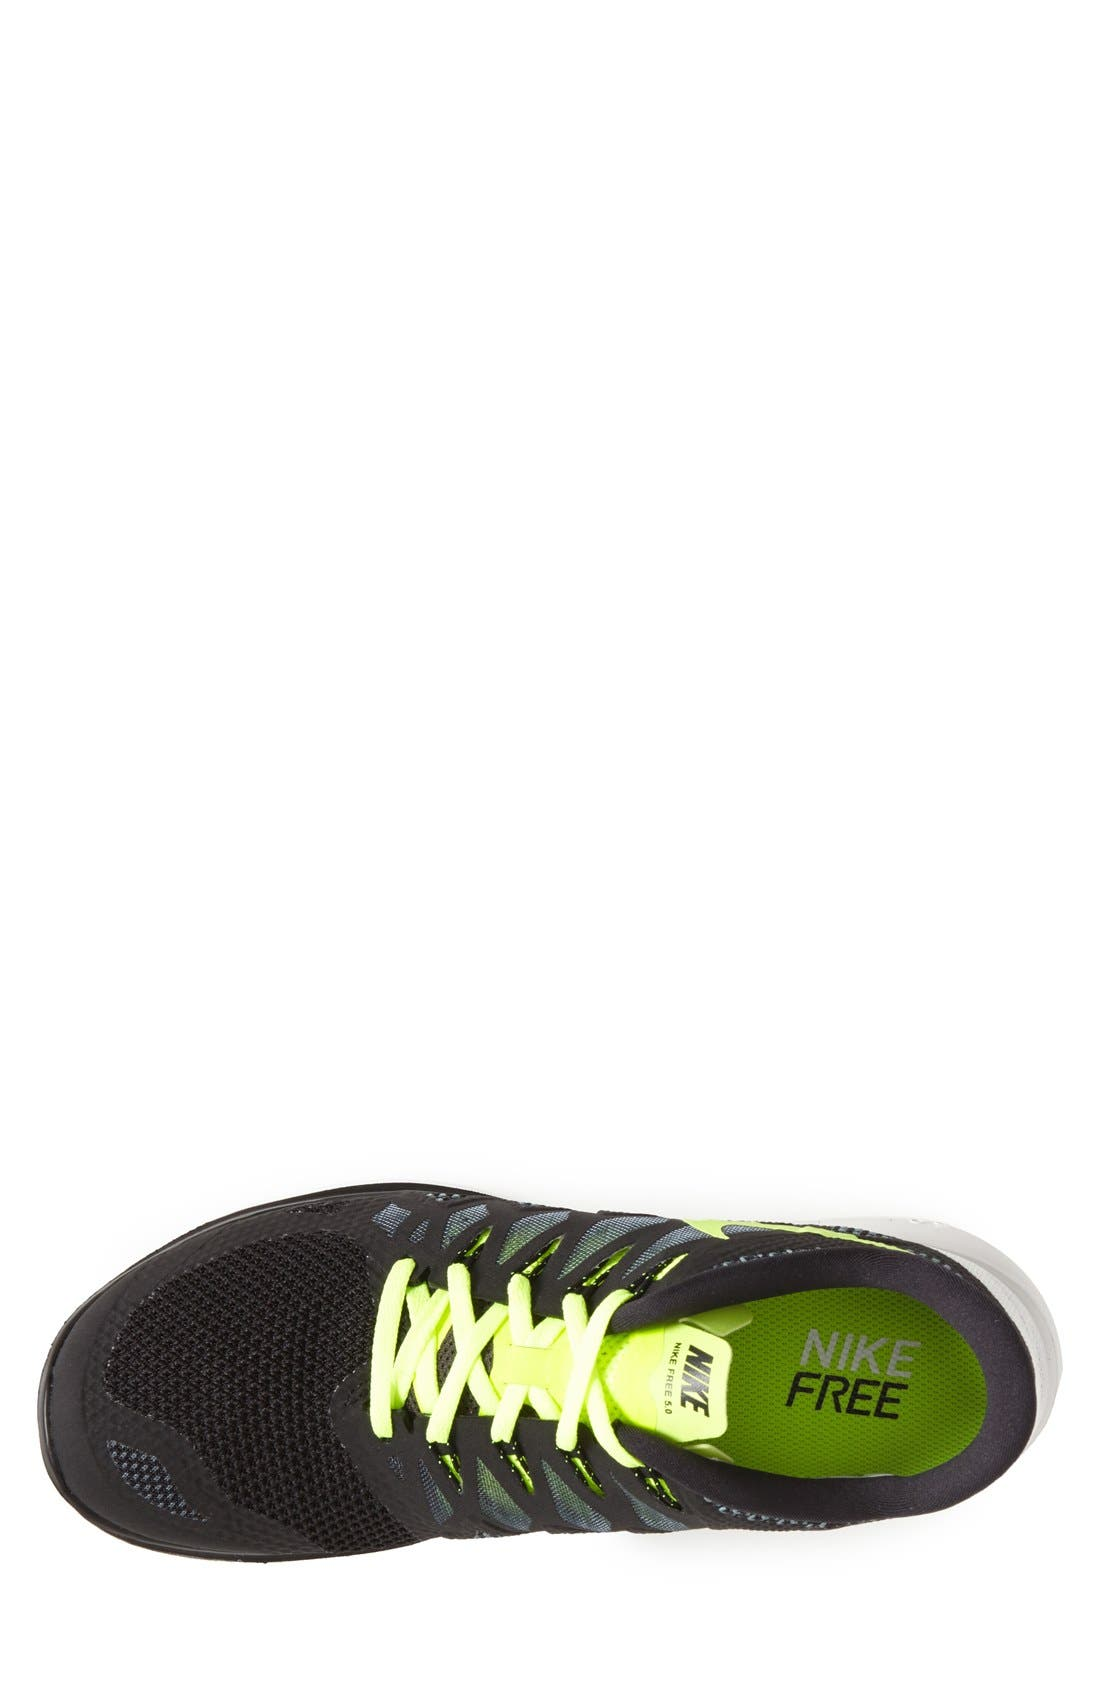 competitive price 49d2a ebf43 ... ireland nike free 5.0 2014 running shoe men nordstrom c8740 843c3